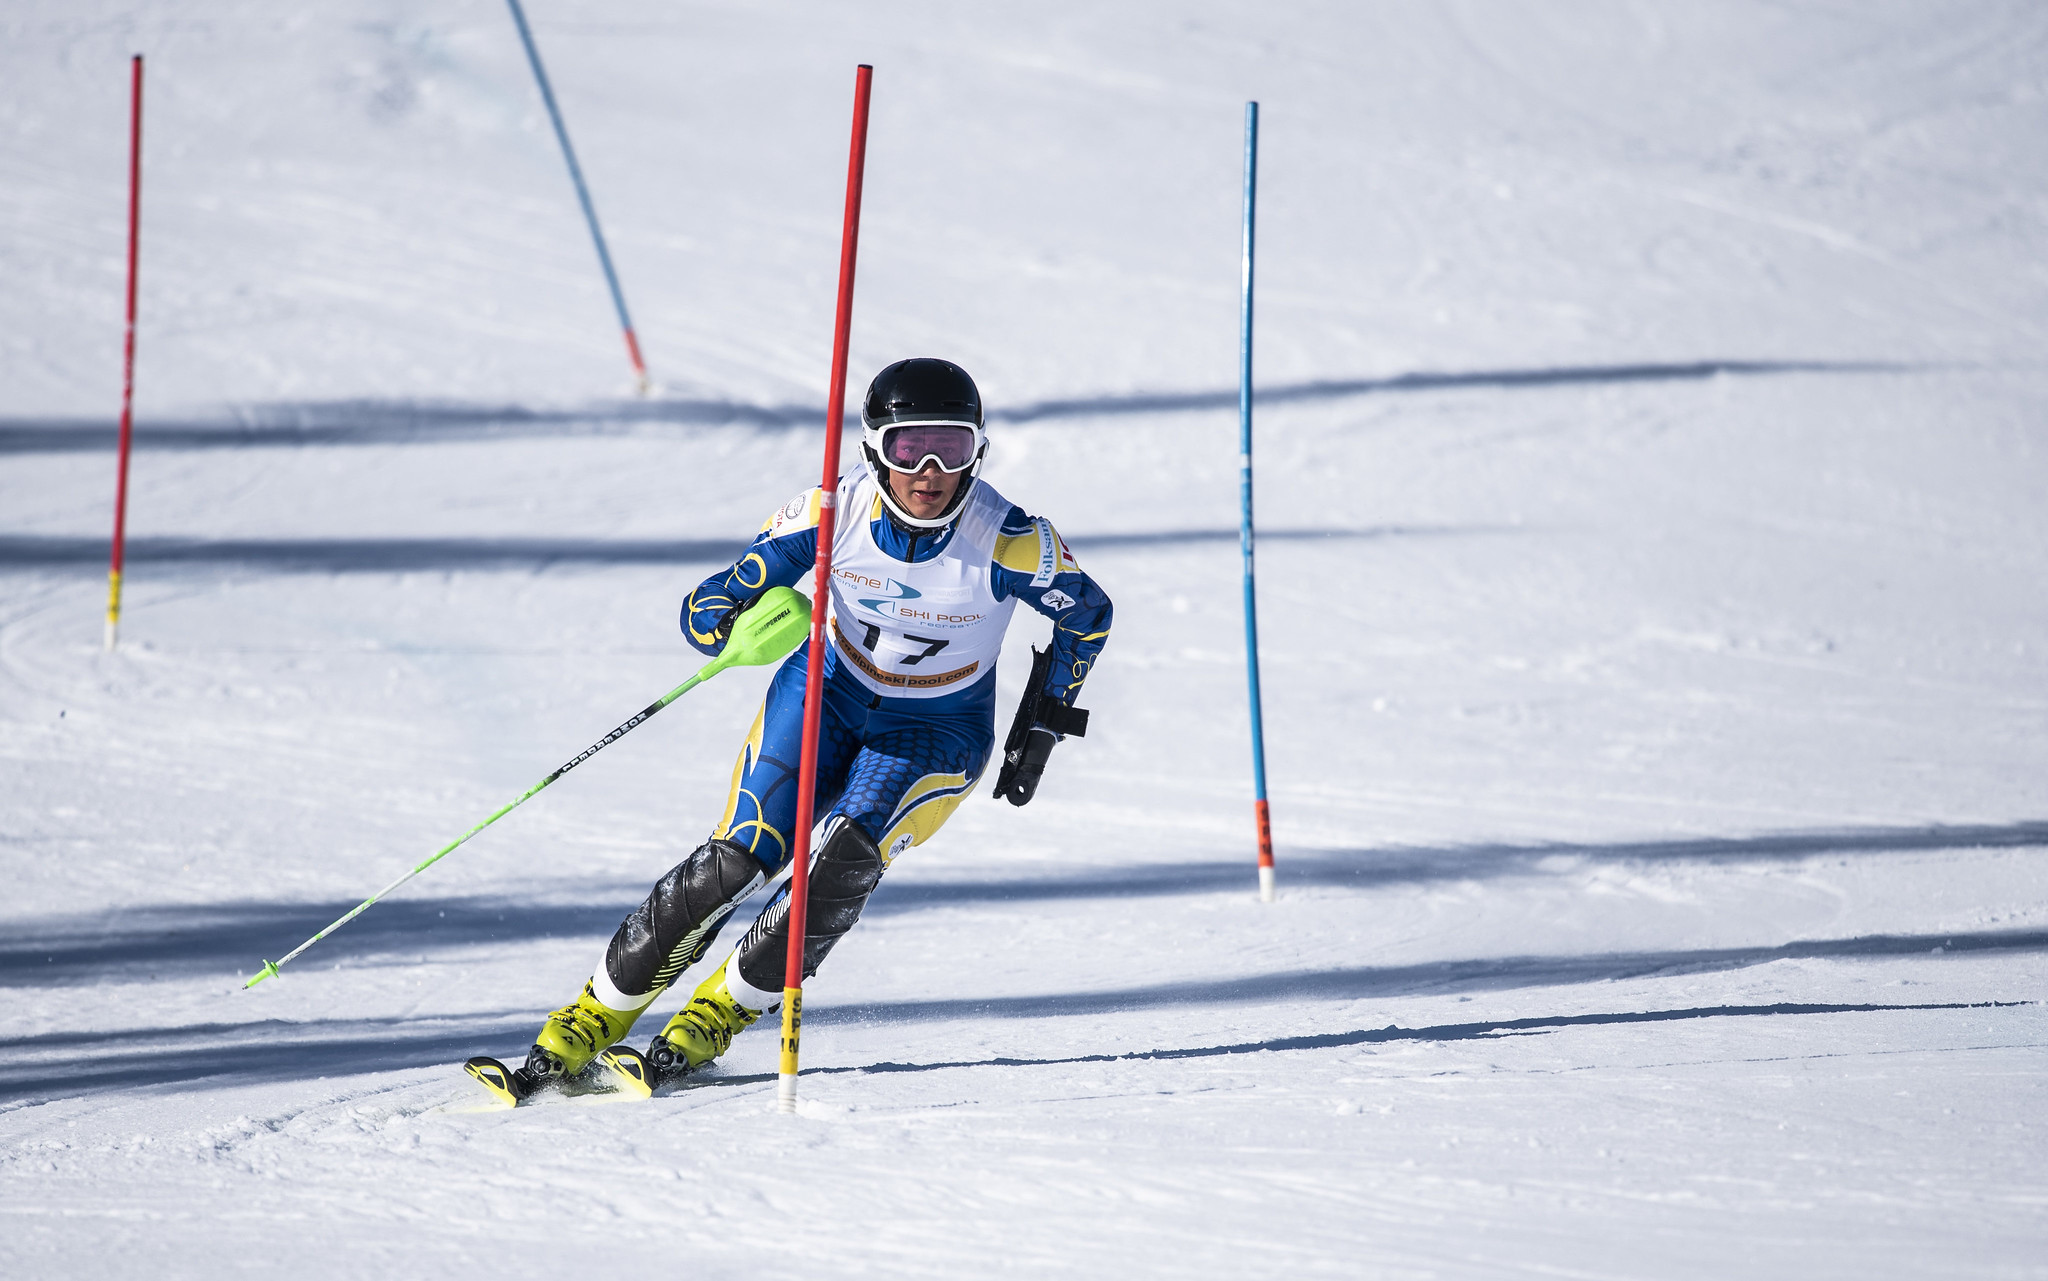 Klövsjö 2019 World Para Alpine Skiing European Cup Final